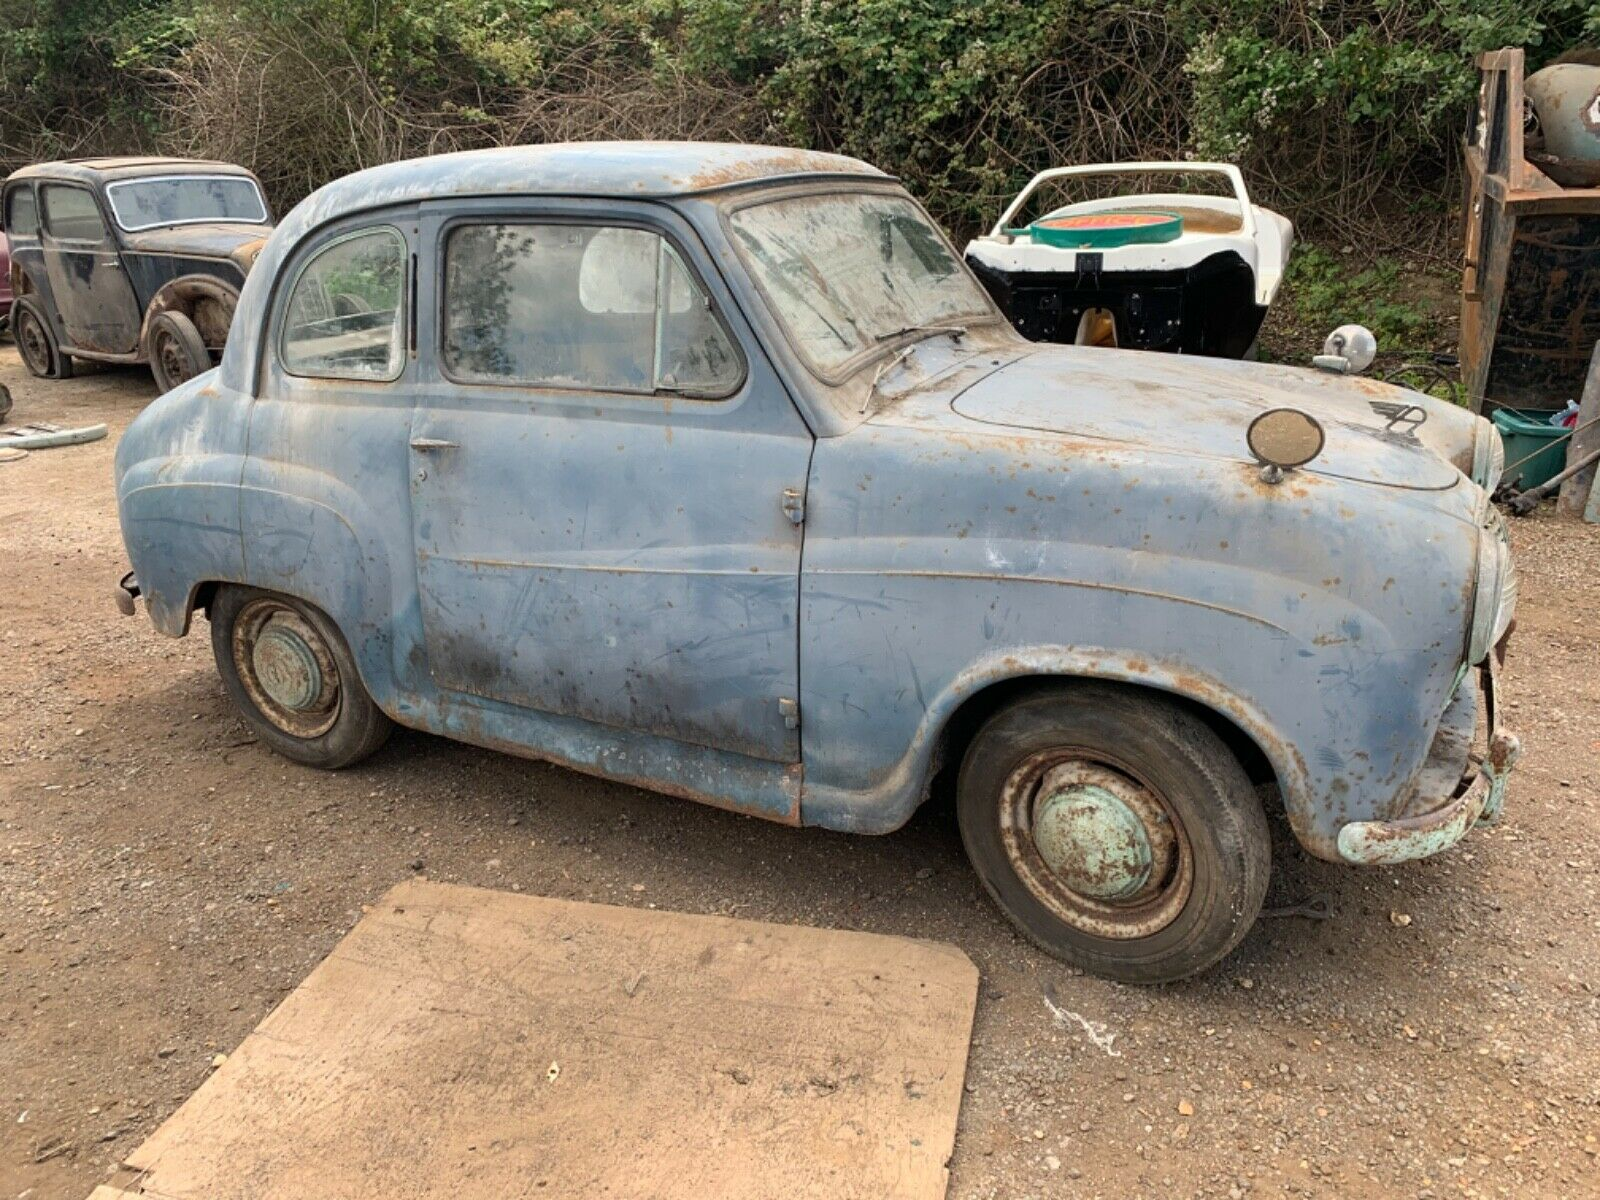 Austin-a30-2-door-1955-barn-find-stored-since-1981-for-restoration